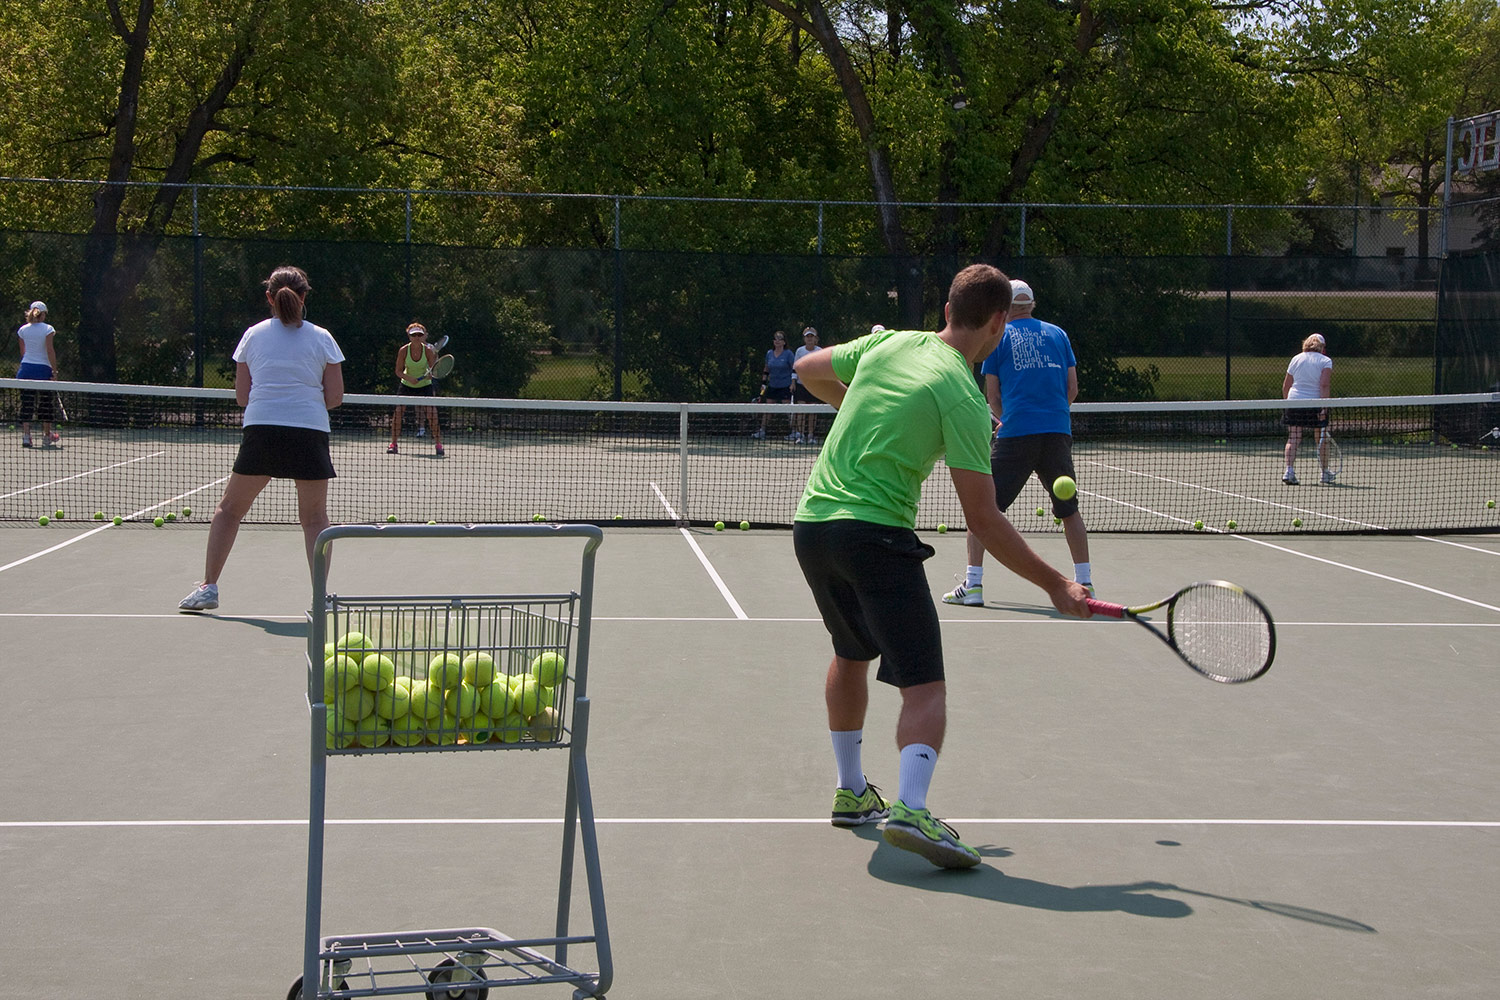 Join a Program - We have programs for players at all levels. Find information on clinics, leagues, ladders and Team Tennis.